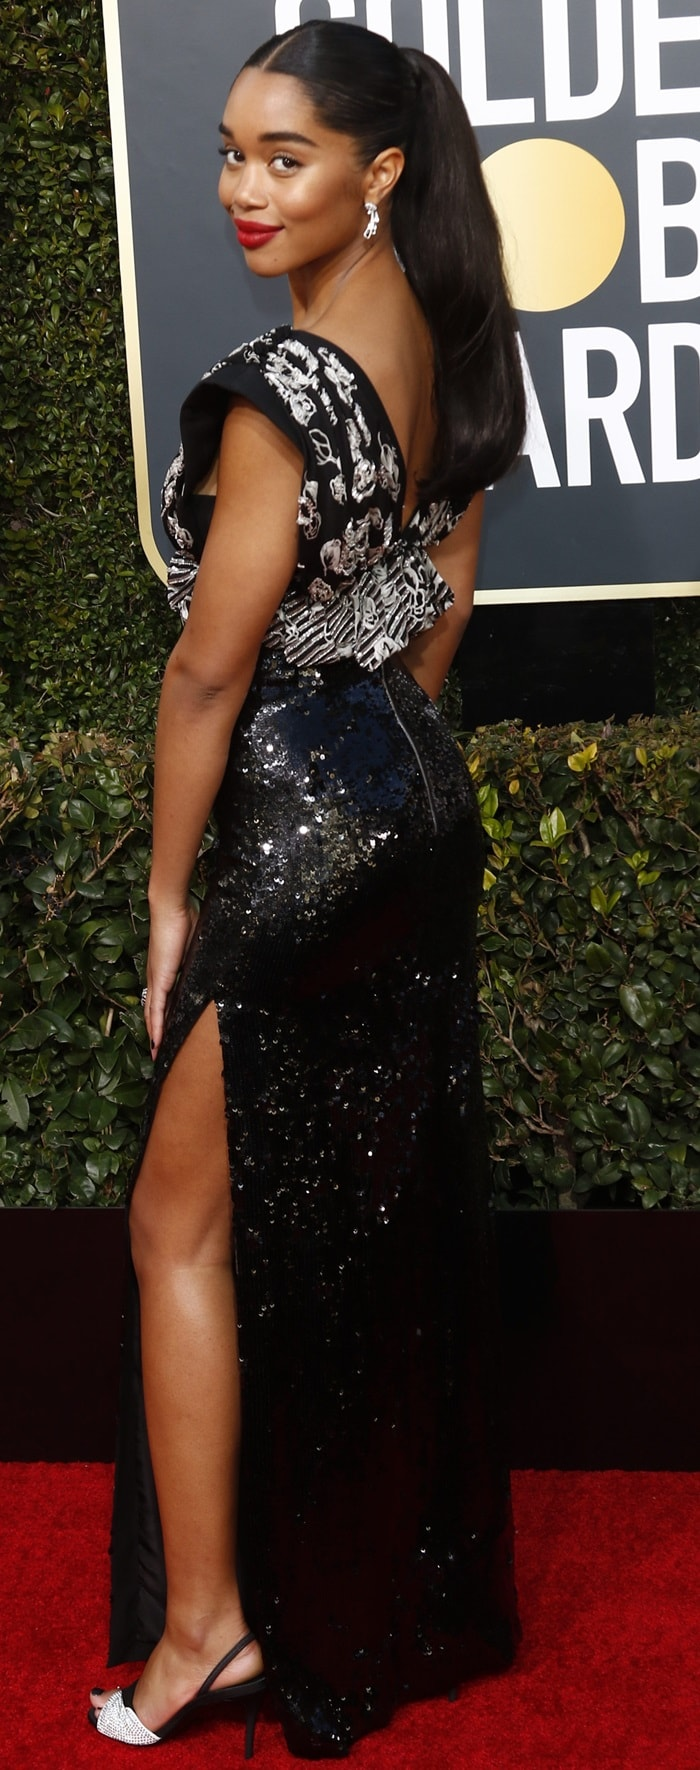 Laura Harrier flaunts her legs on the red carpet at the 2019 Golden Globe Awards at the Beverly Hilton Hotel in Beverly Hills, California, on January 6, 2019